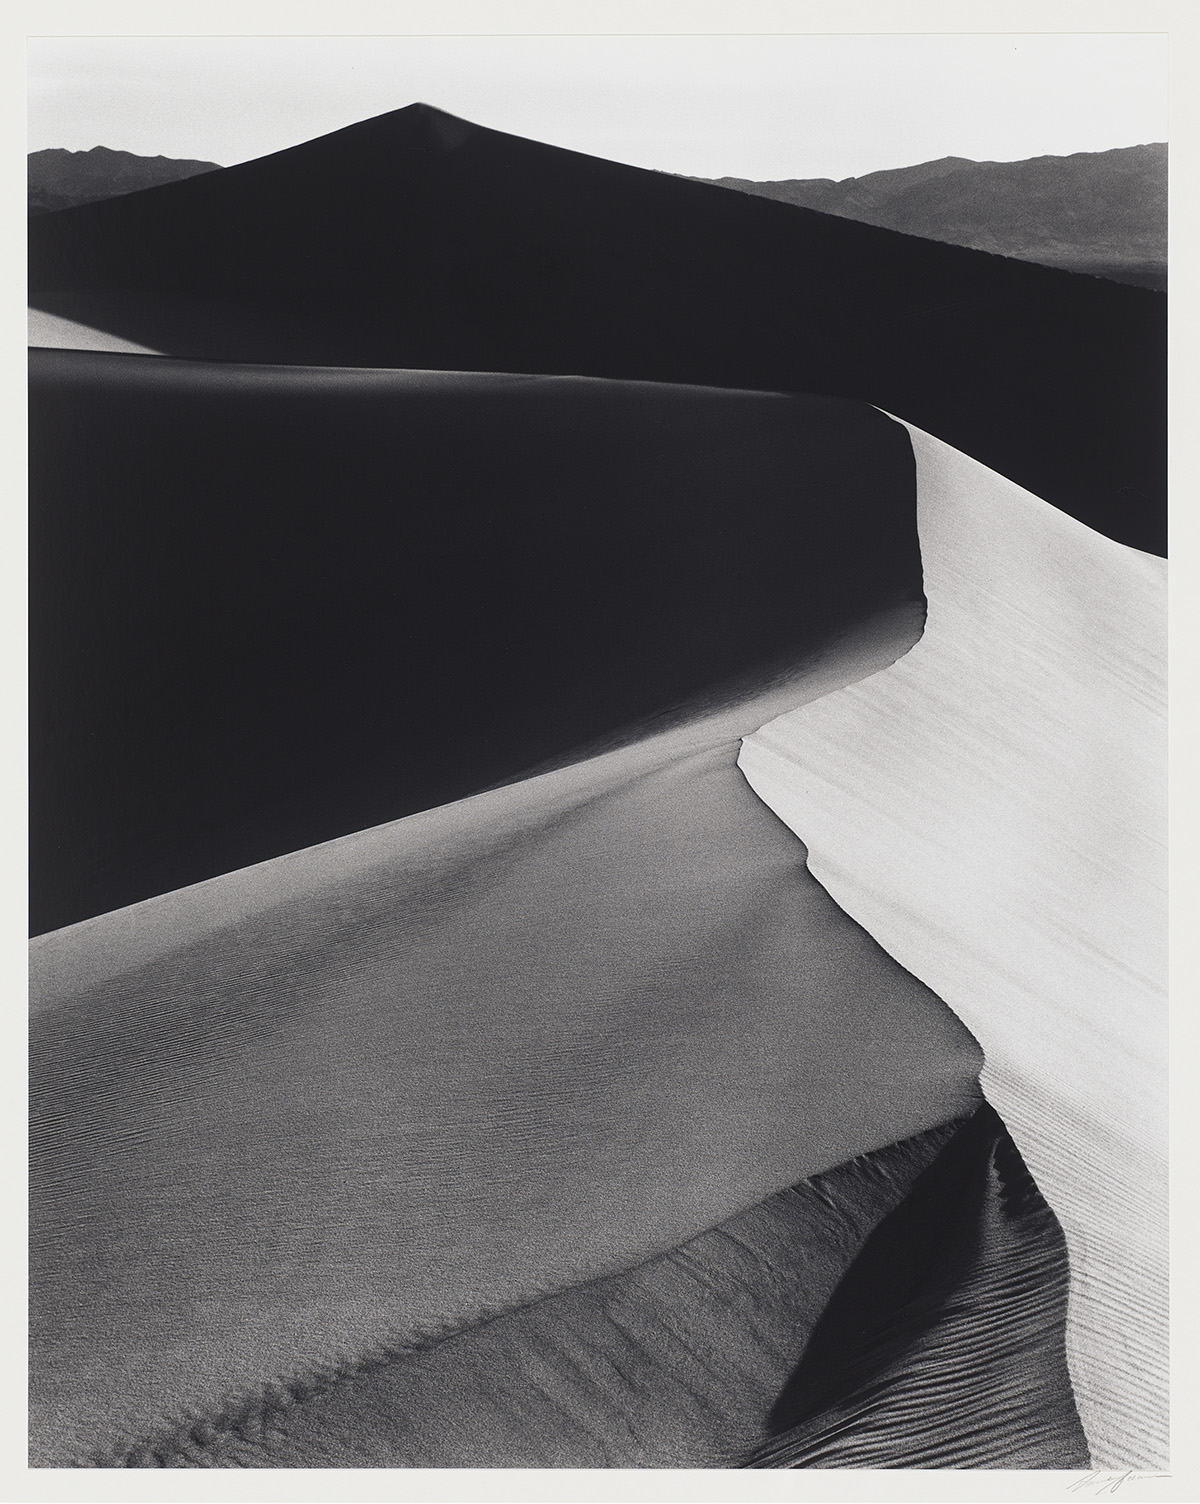 [Image description: Ansel Adams, Sand Dunes, Death Valley National Monument, California, gelatin silver print. A black and white, portrait-oriented photograph of steep sand dunes shown in high contrast shadow and light. The ridge of the main dune begins at upper left, crosses to the upper right then zig zags down to the lower edge of the photo. The steep sides contrast in tone. The right side of the dune is bathed in light and appears as pale gray, while the left slope of the dune is split between being almost black at its upper portion then changing to a medium gray as the dune catches more sunshine. In the background a black, horizontal dune appears, stretching from left to right contrasting with the highlights of the main dunes' ridge. At upper right in the background, a distant dune appears as a medium gray tone.]